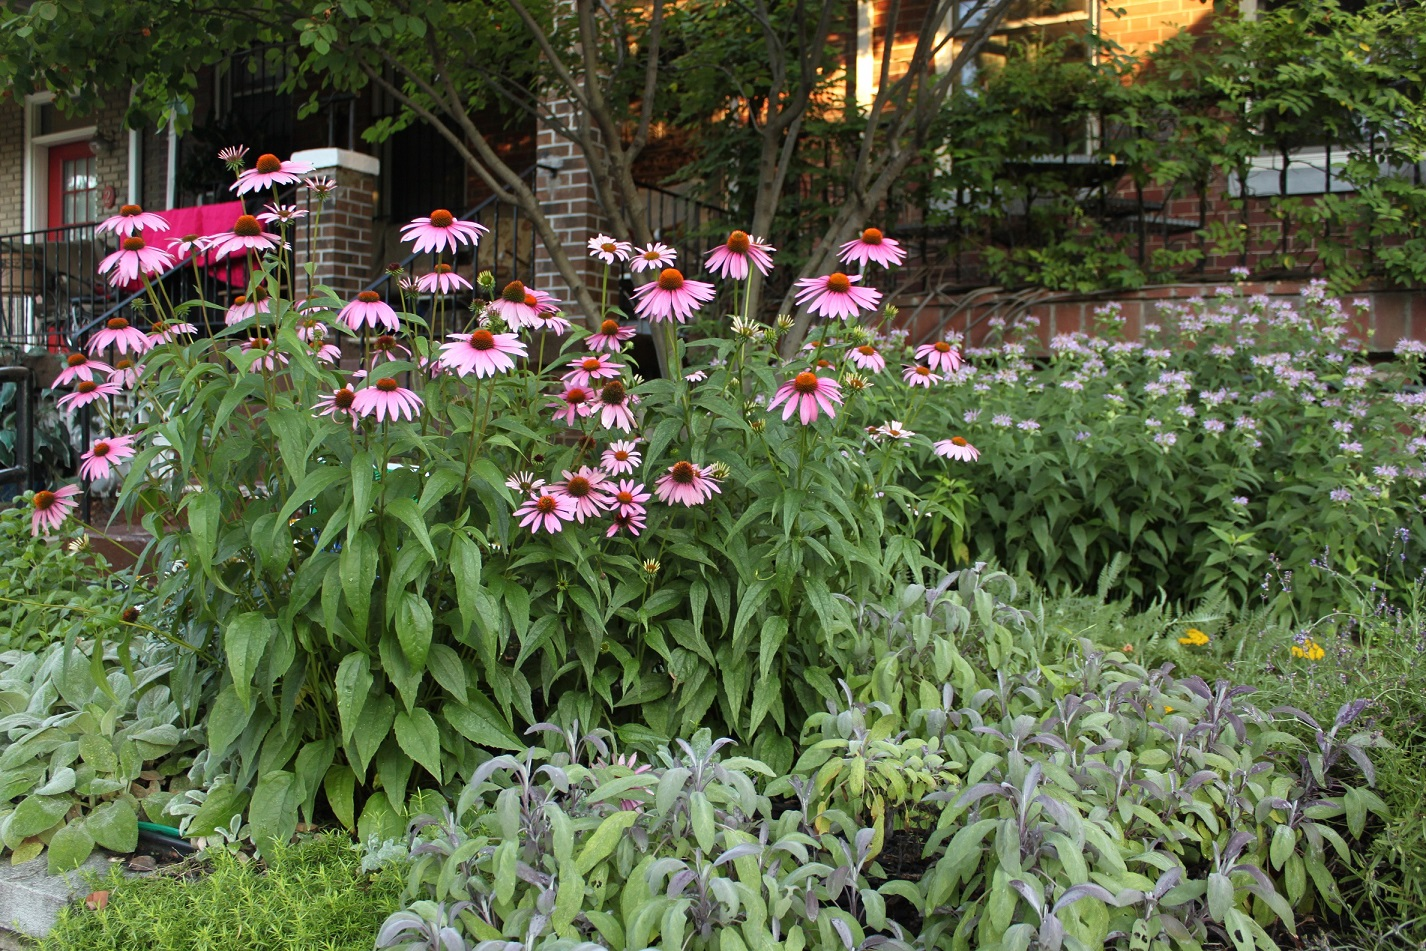 Coneflowers in a garden on New Hampshire Ave.